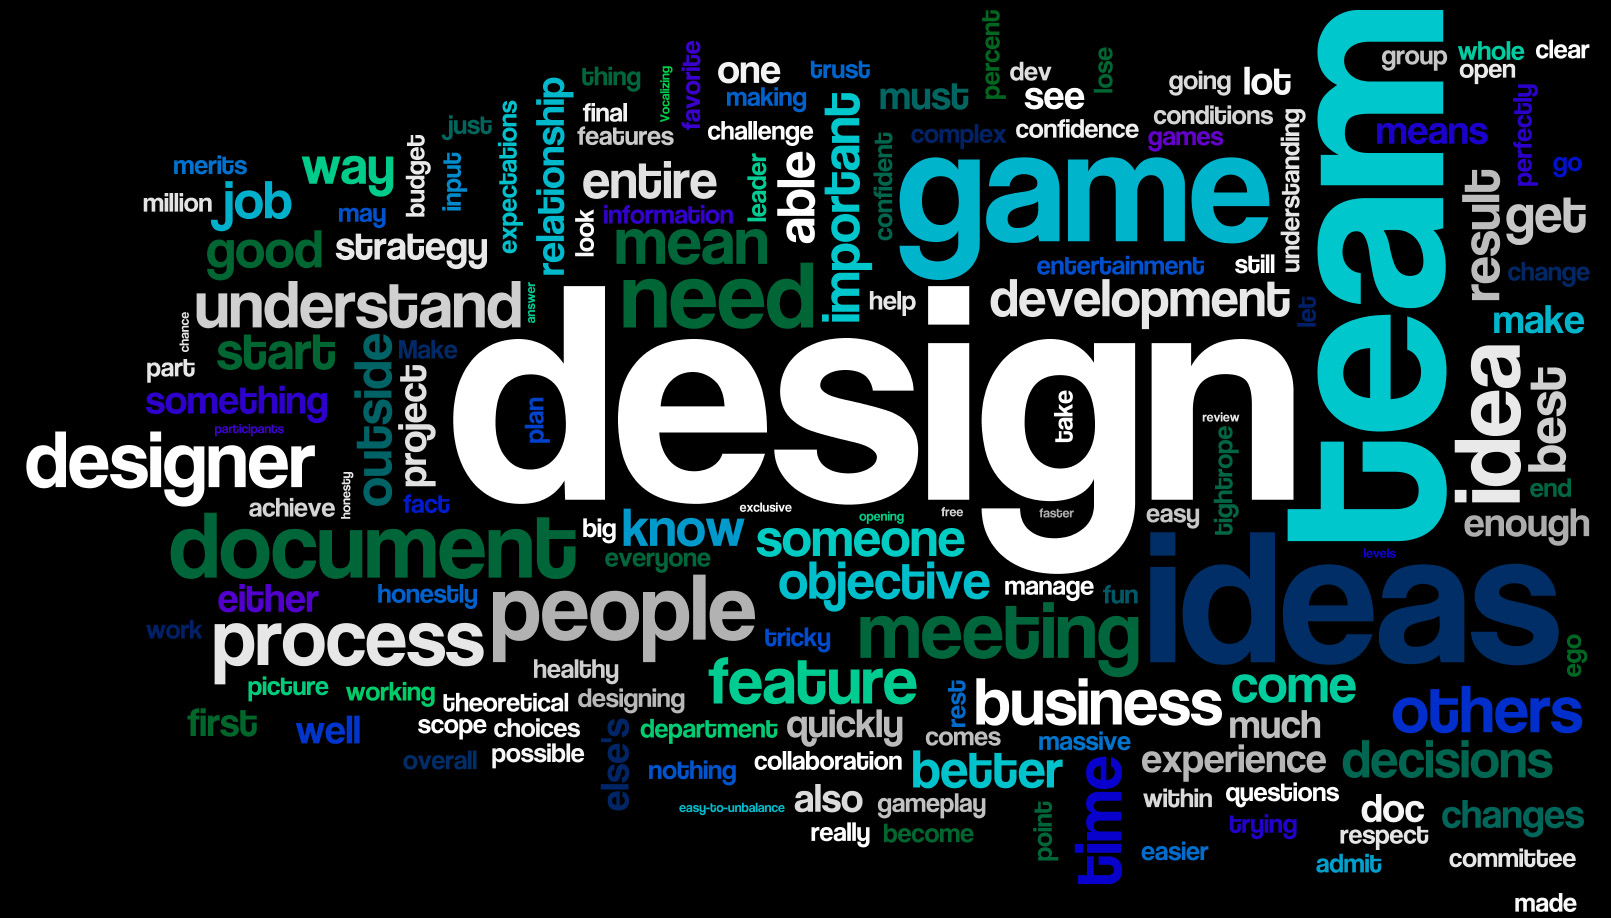 Game Design Journal Blog For Game Reviews - Game design